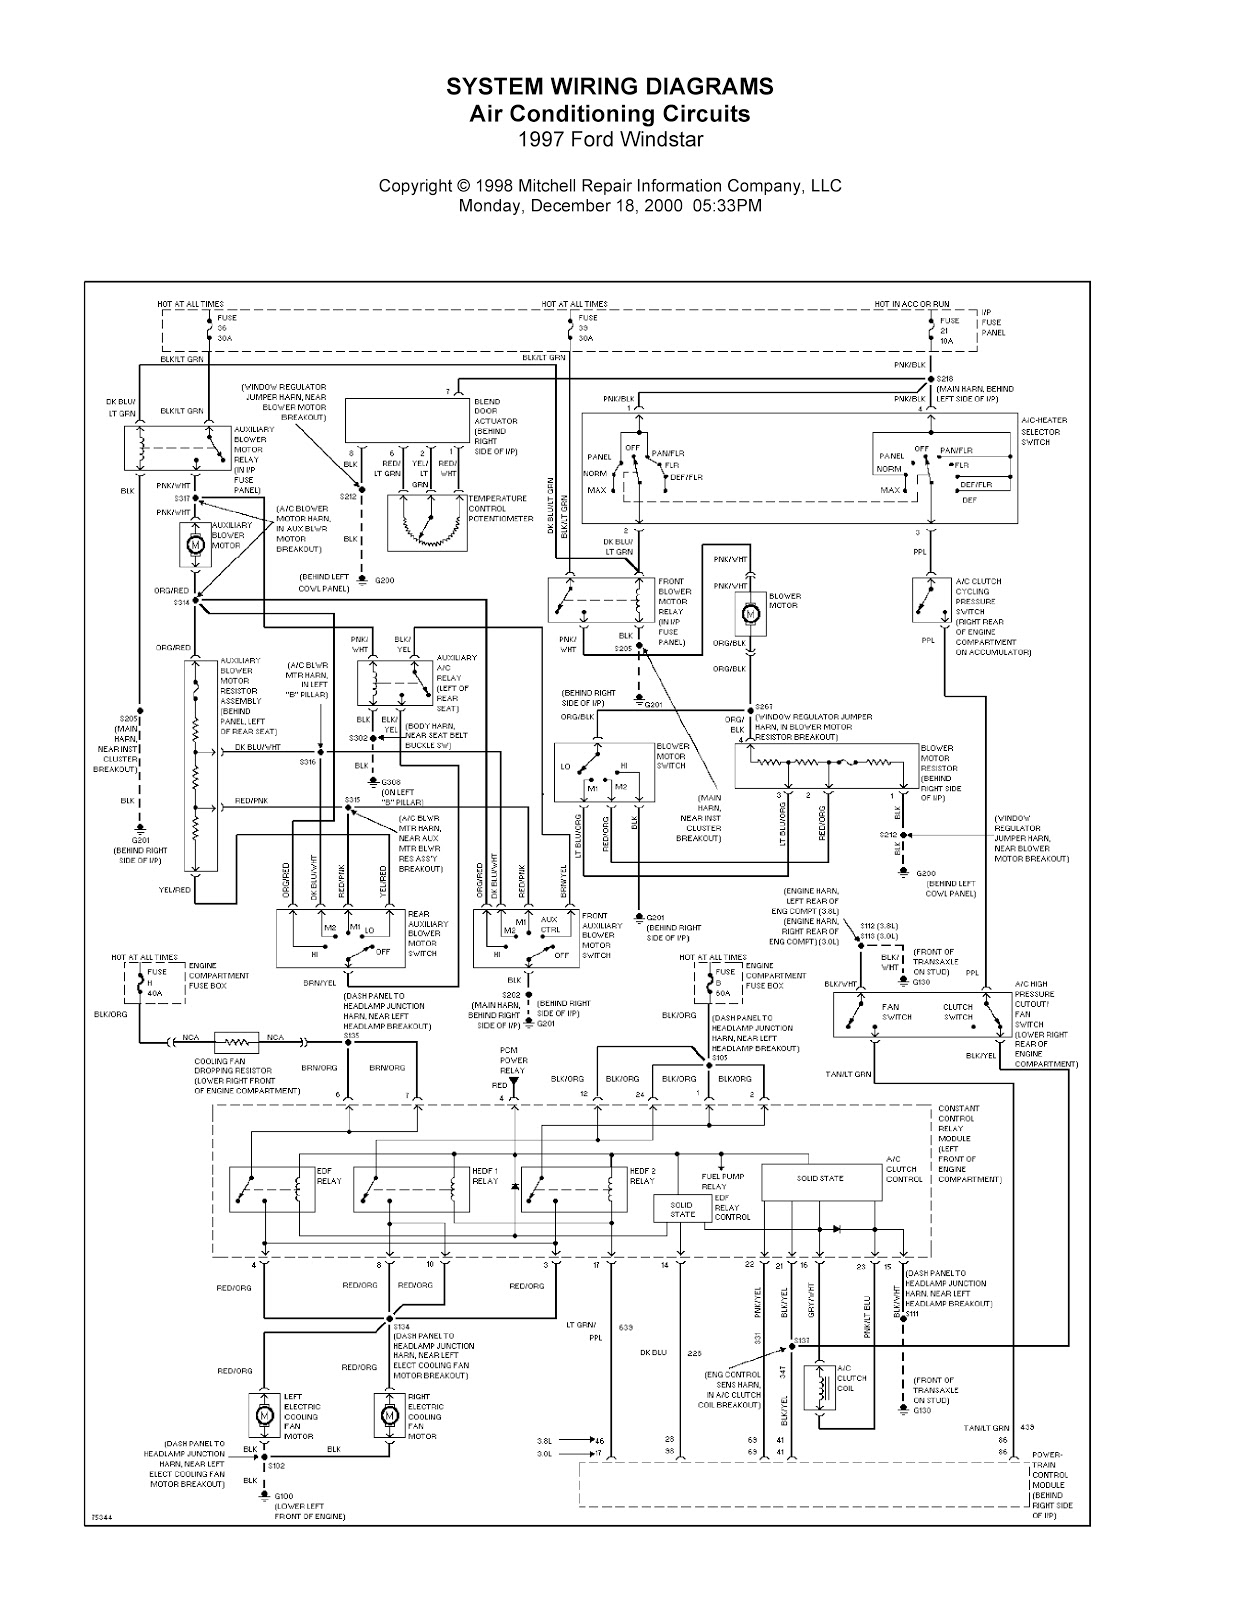 0001 1998 ford f150 wiring diagram 1998 ford f150 troubleshooting 94 Ford F-150 Wiring Diagram at bayanpartner.co